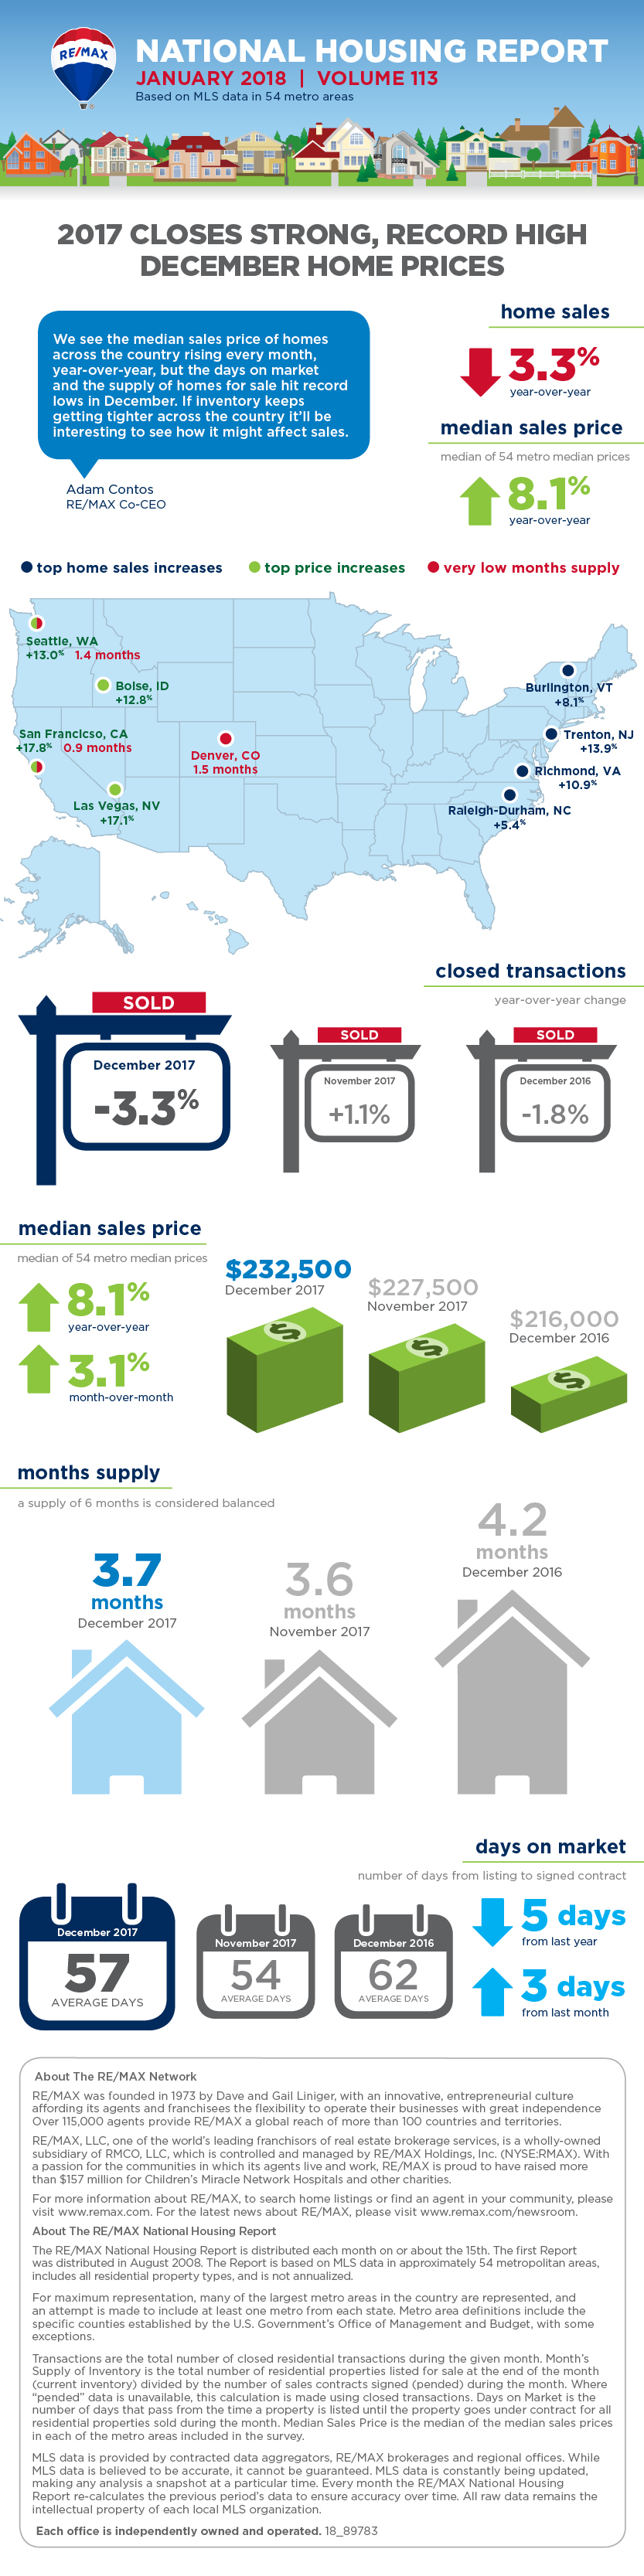 January 2018 RE/MAX National Housing Report